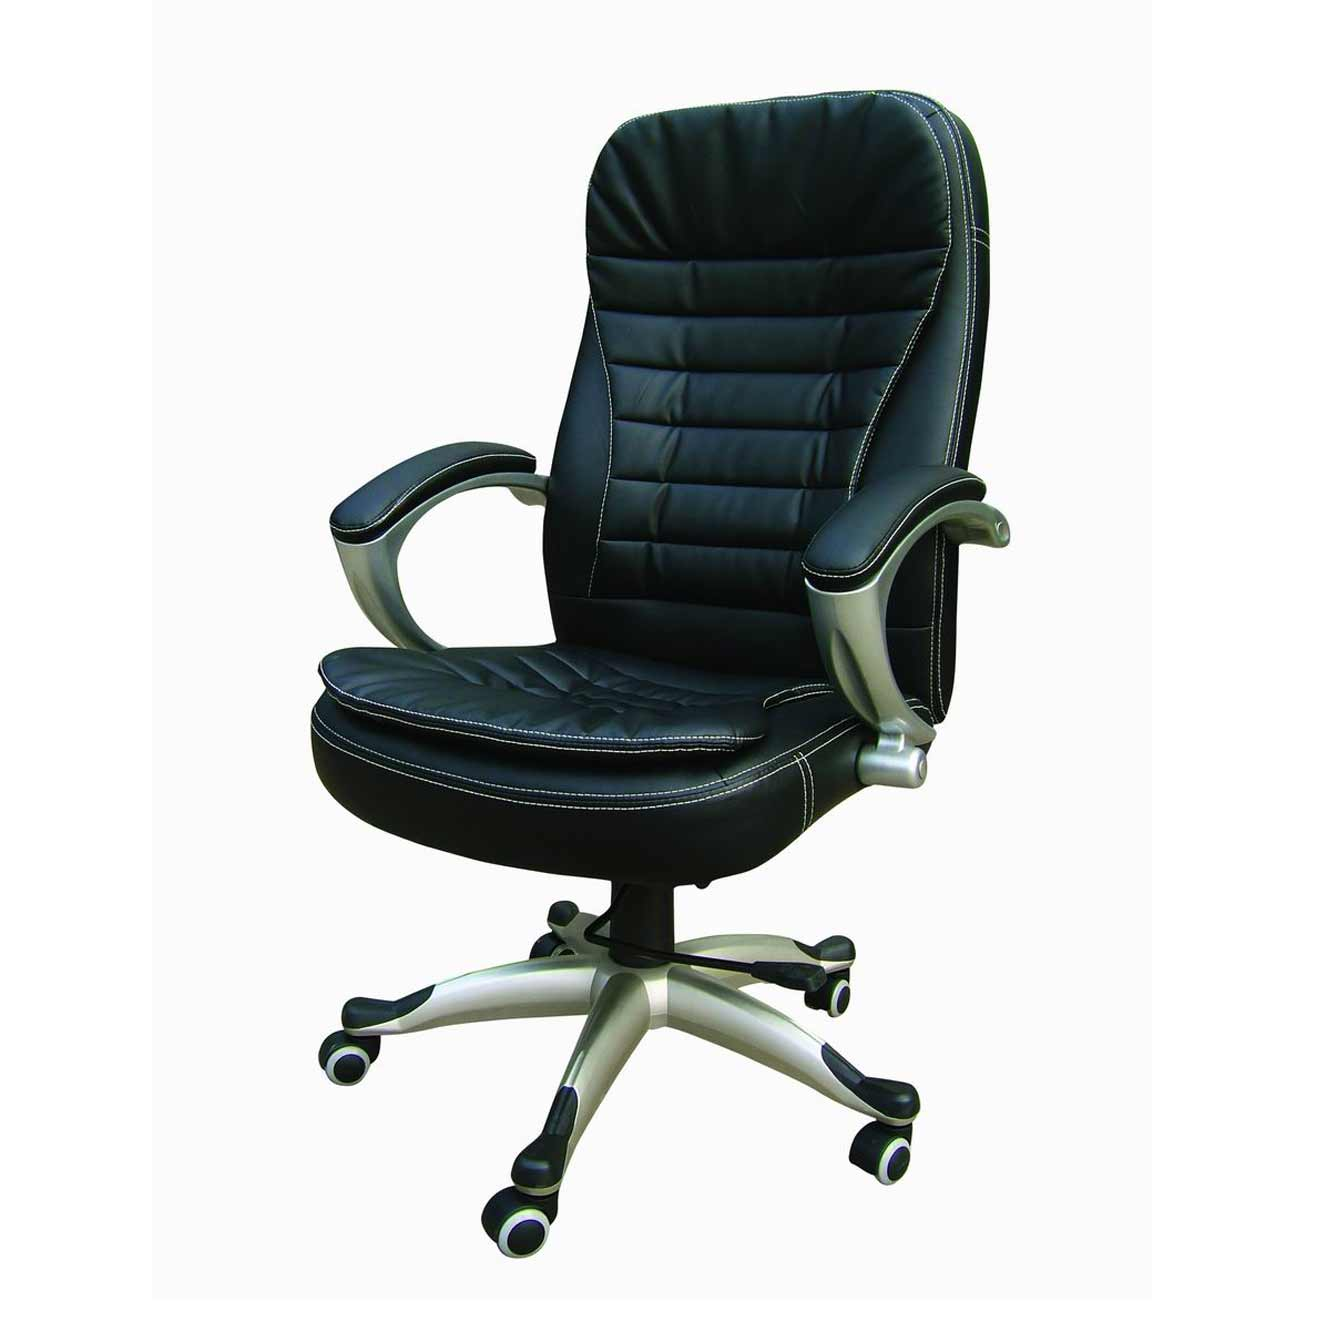 Delightful Ergonomic Workplace Chair With Lumbar Assist. Ergonomic Office Chair With Lumbar  Support